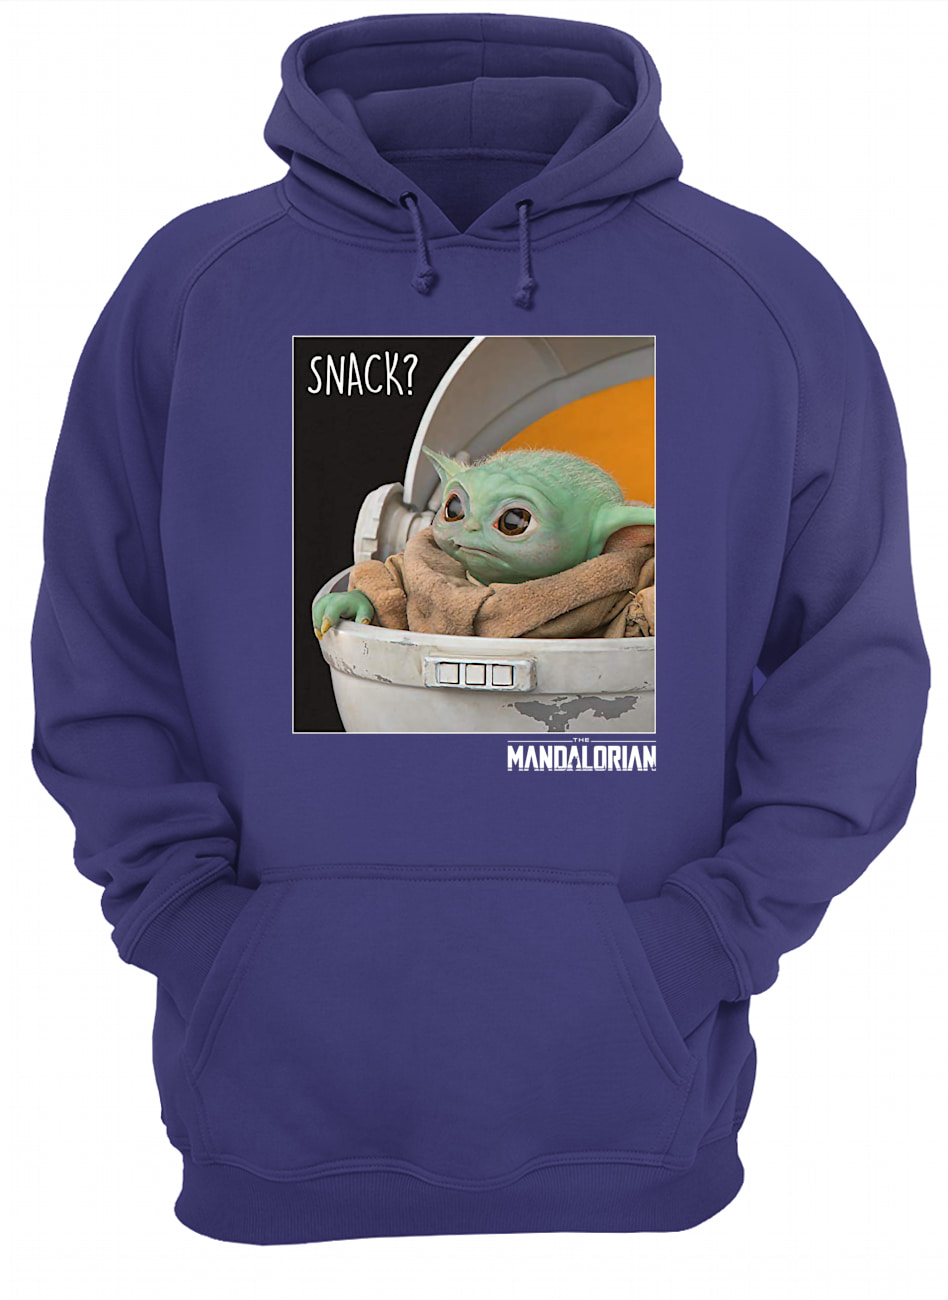 Star wars the mandalorian the child snack time hoodie